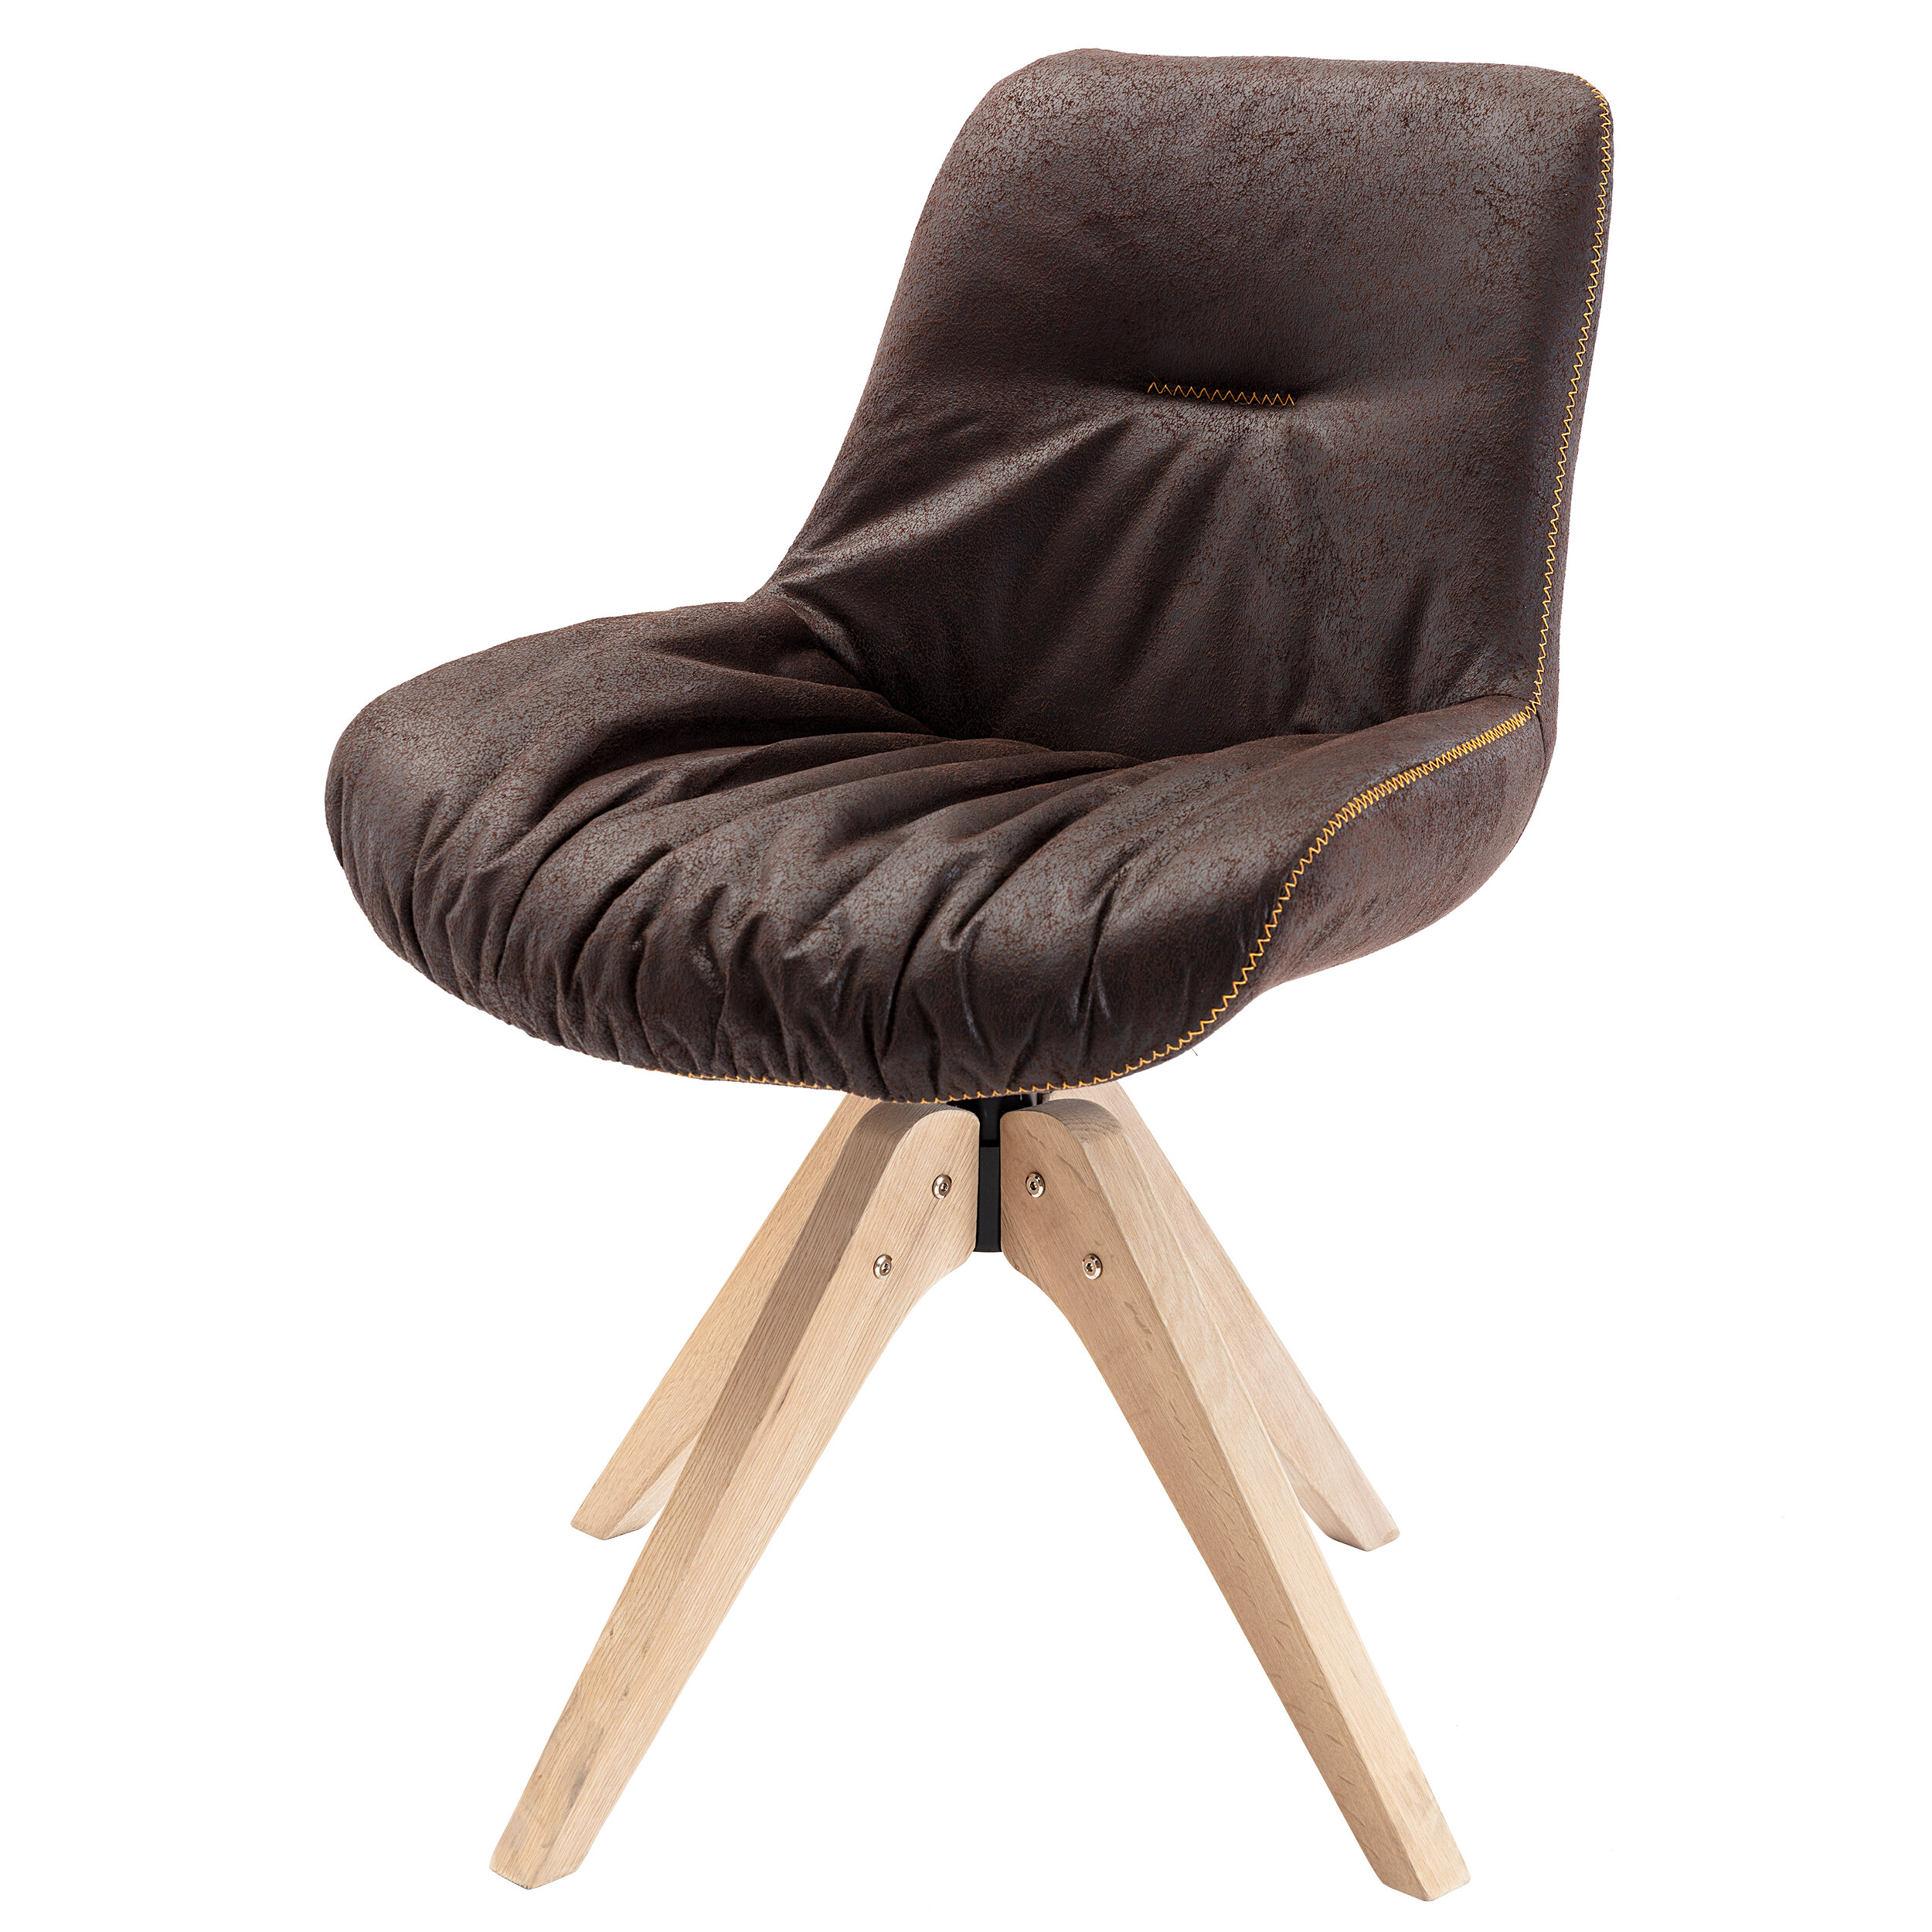 Arabelle Swivel Side Chair Throughout Brister Swivel Side Chairs (View 8 of 15)